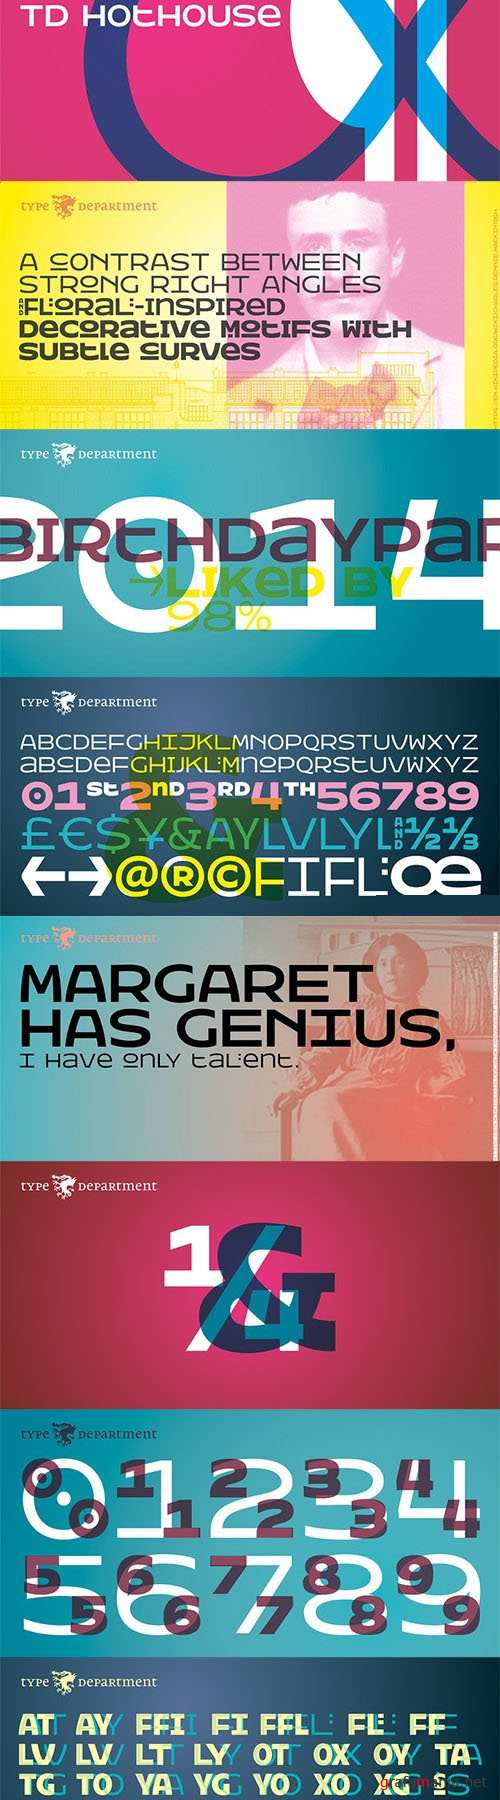 TD Hothouse Font Family